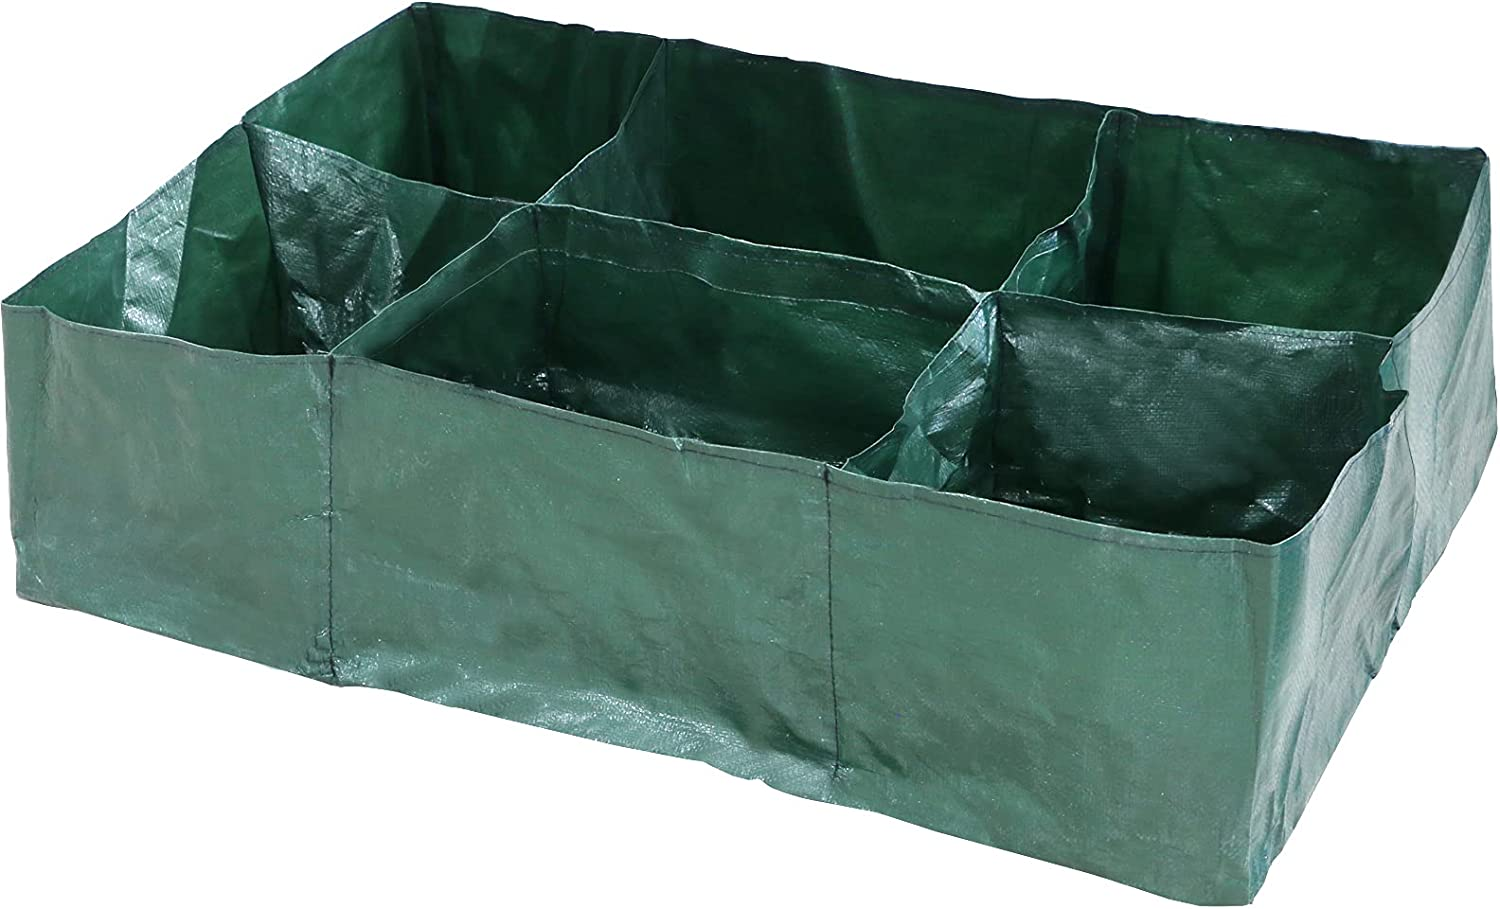 CZWESTC Large Square PE Fabric Raised Planting Bed with 6 Compartments, Garden Grow Box Bag Pots for Tomato, Potato, Vegetables, Plants, Flower Growing